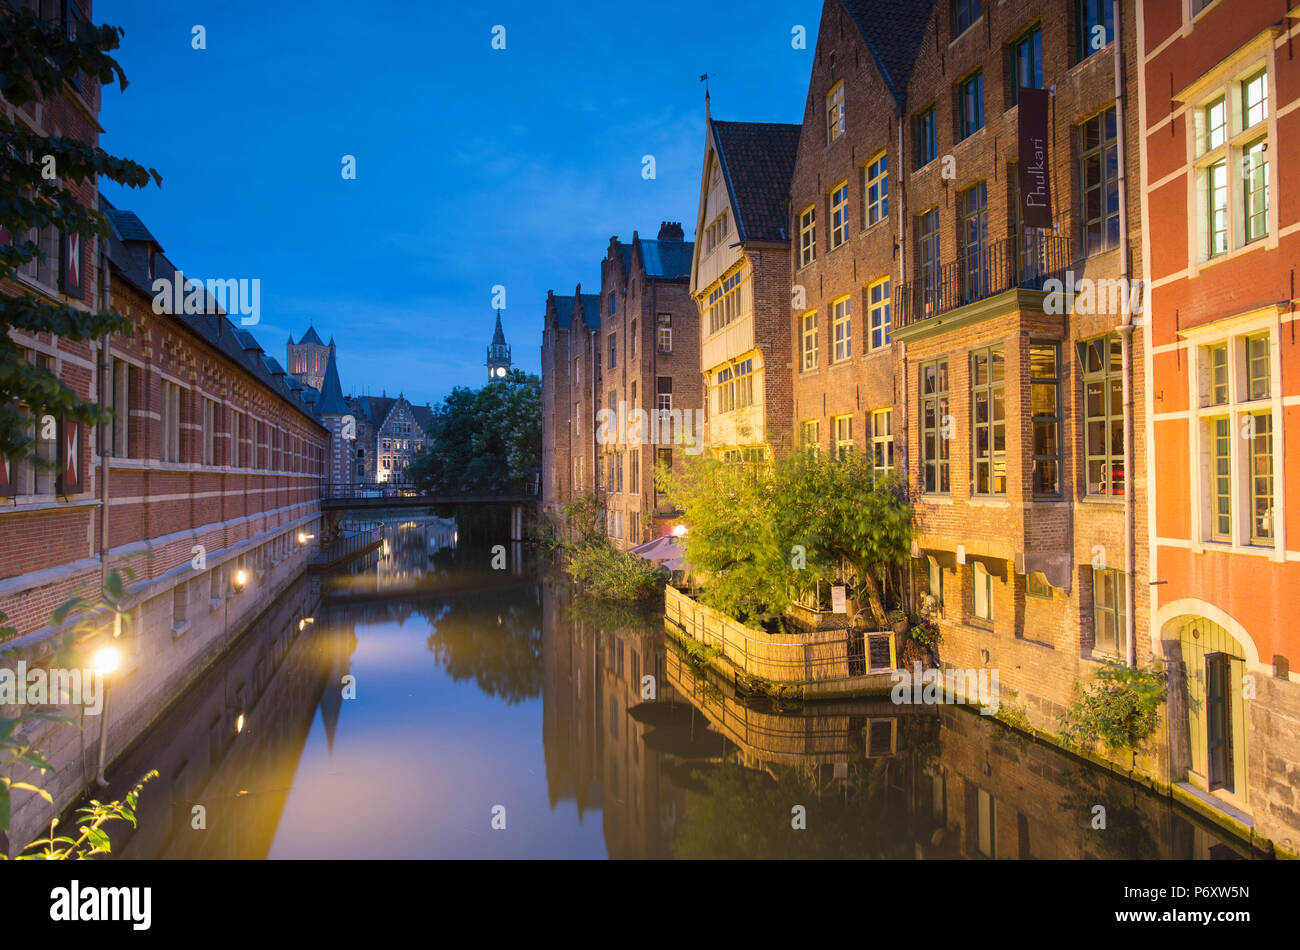 Lieve Canal at dusk, Ghent, Flanders, Belgium - Stock Image